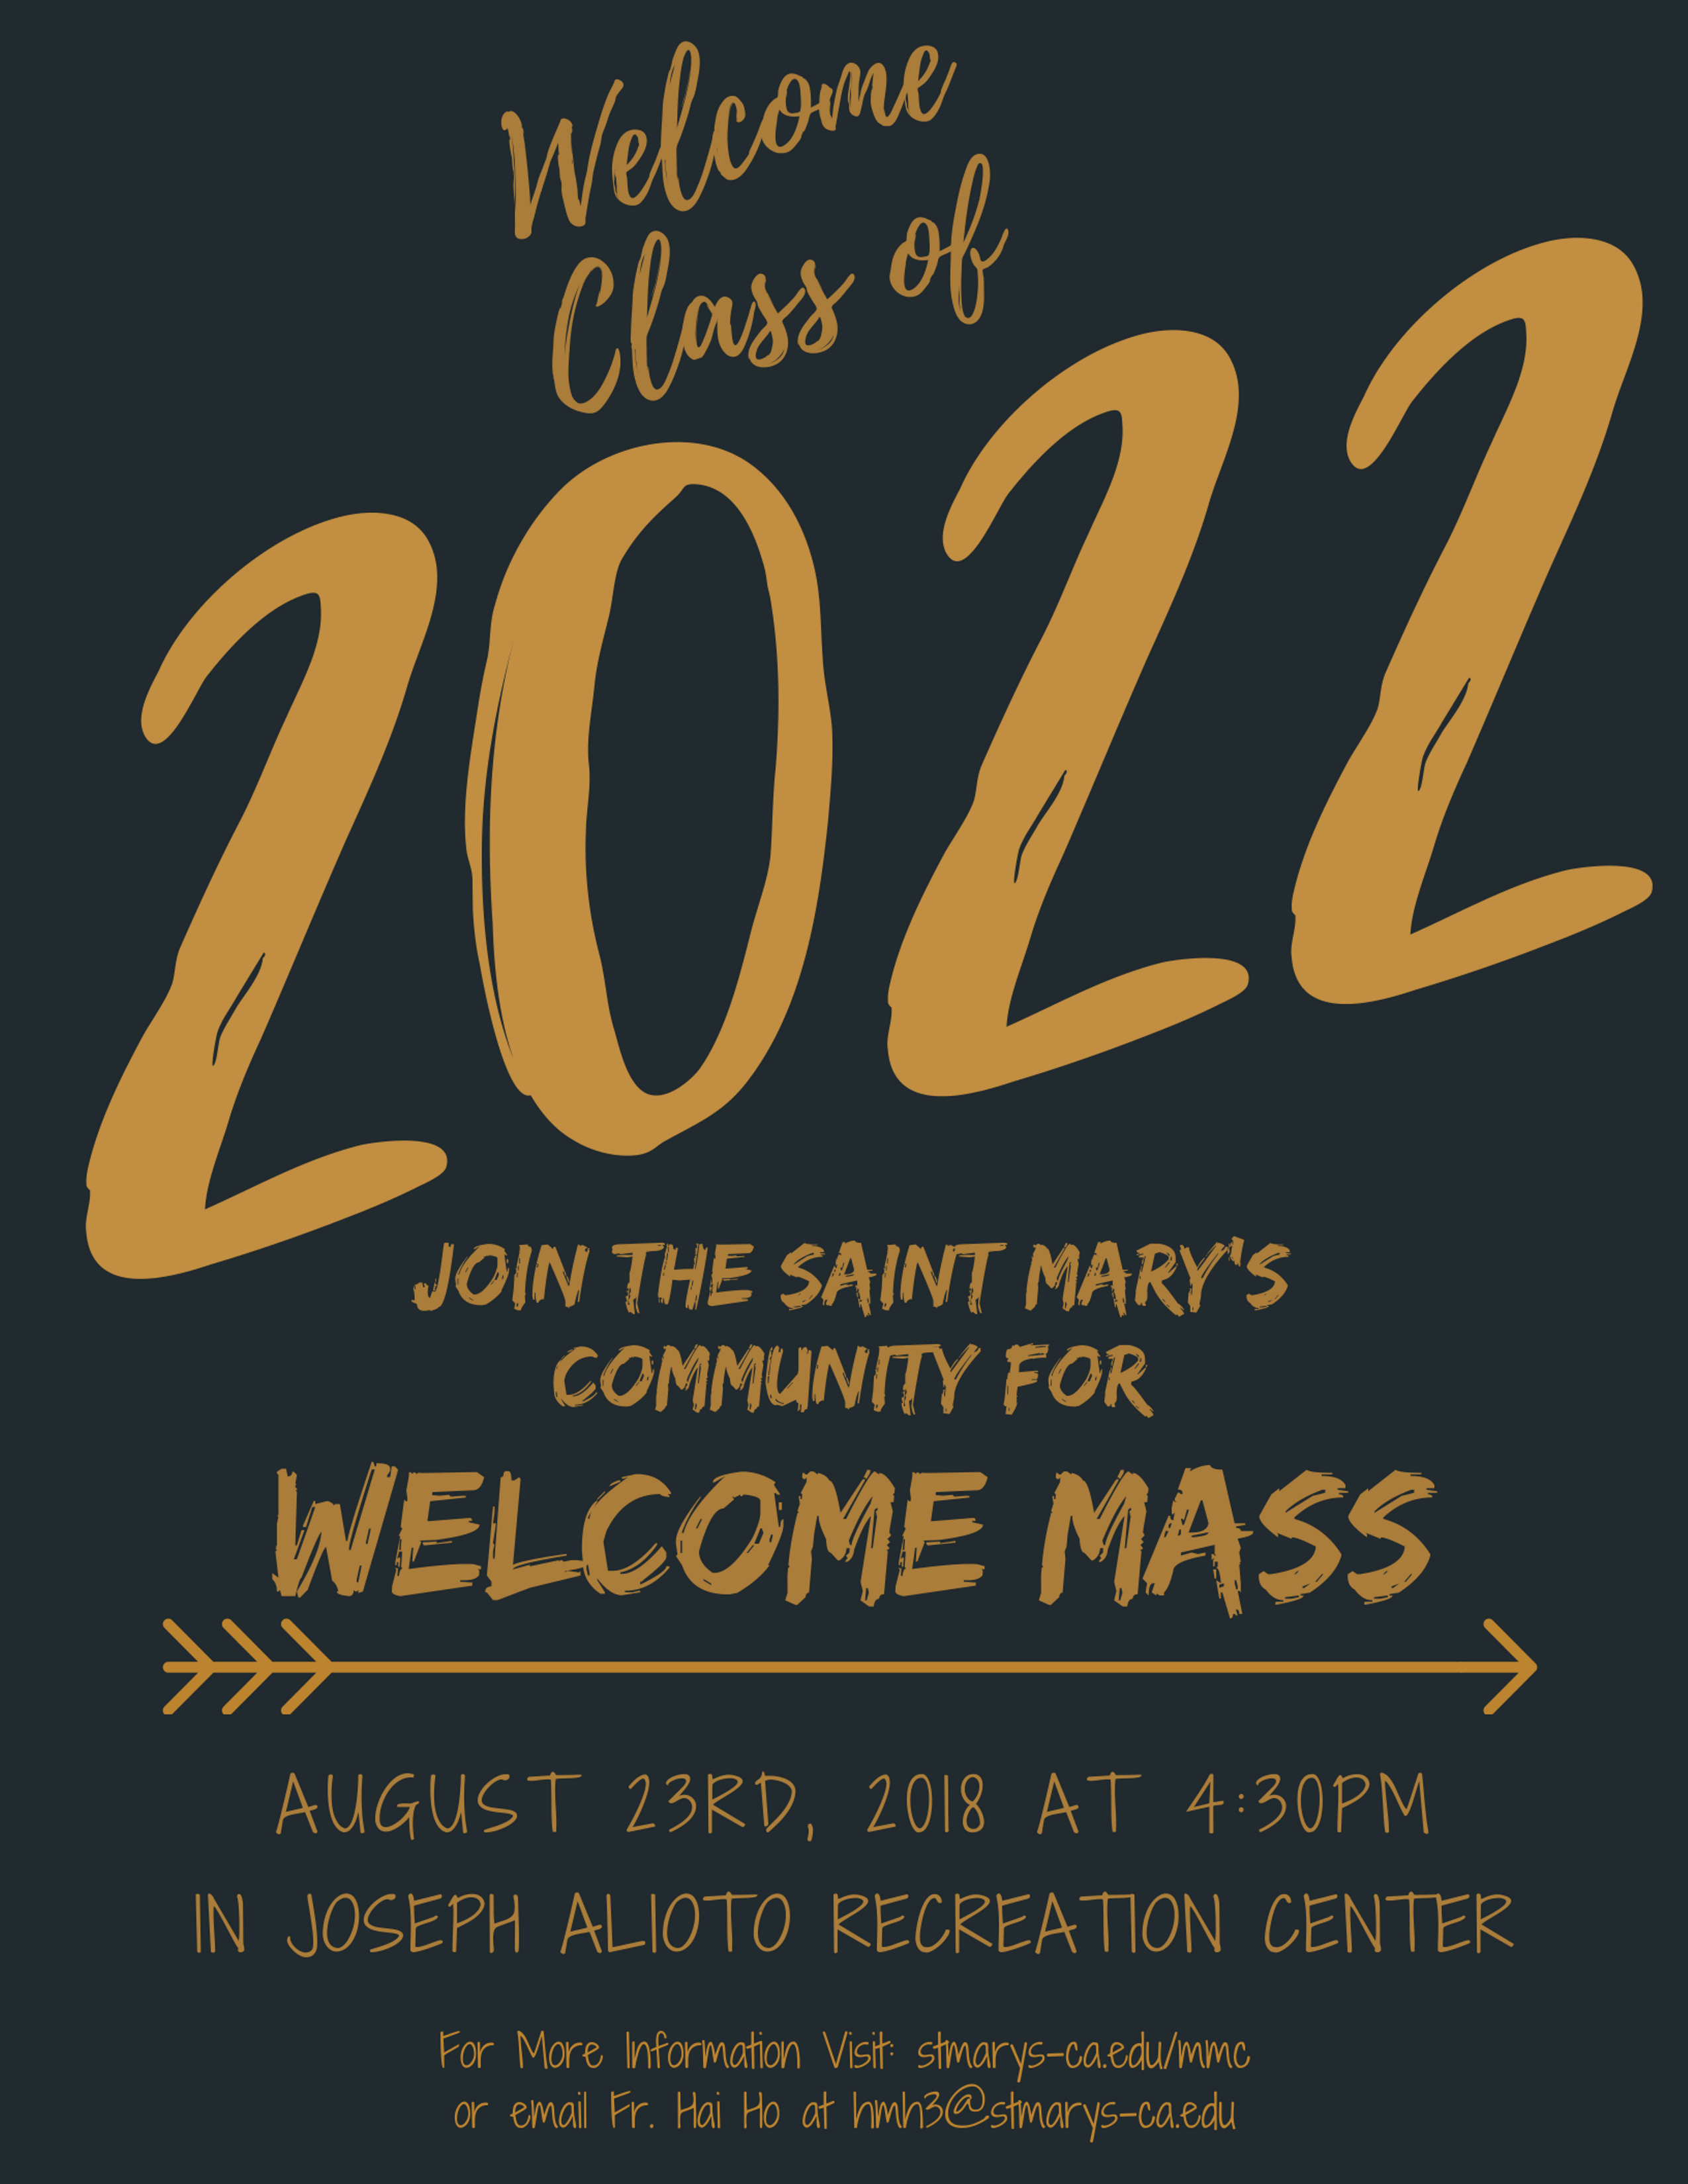 2018 Welcome Mass! August 23rd, 2018 at 4:30pm in the Joseph L. Alioto Recreation Center